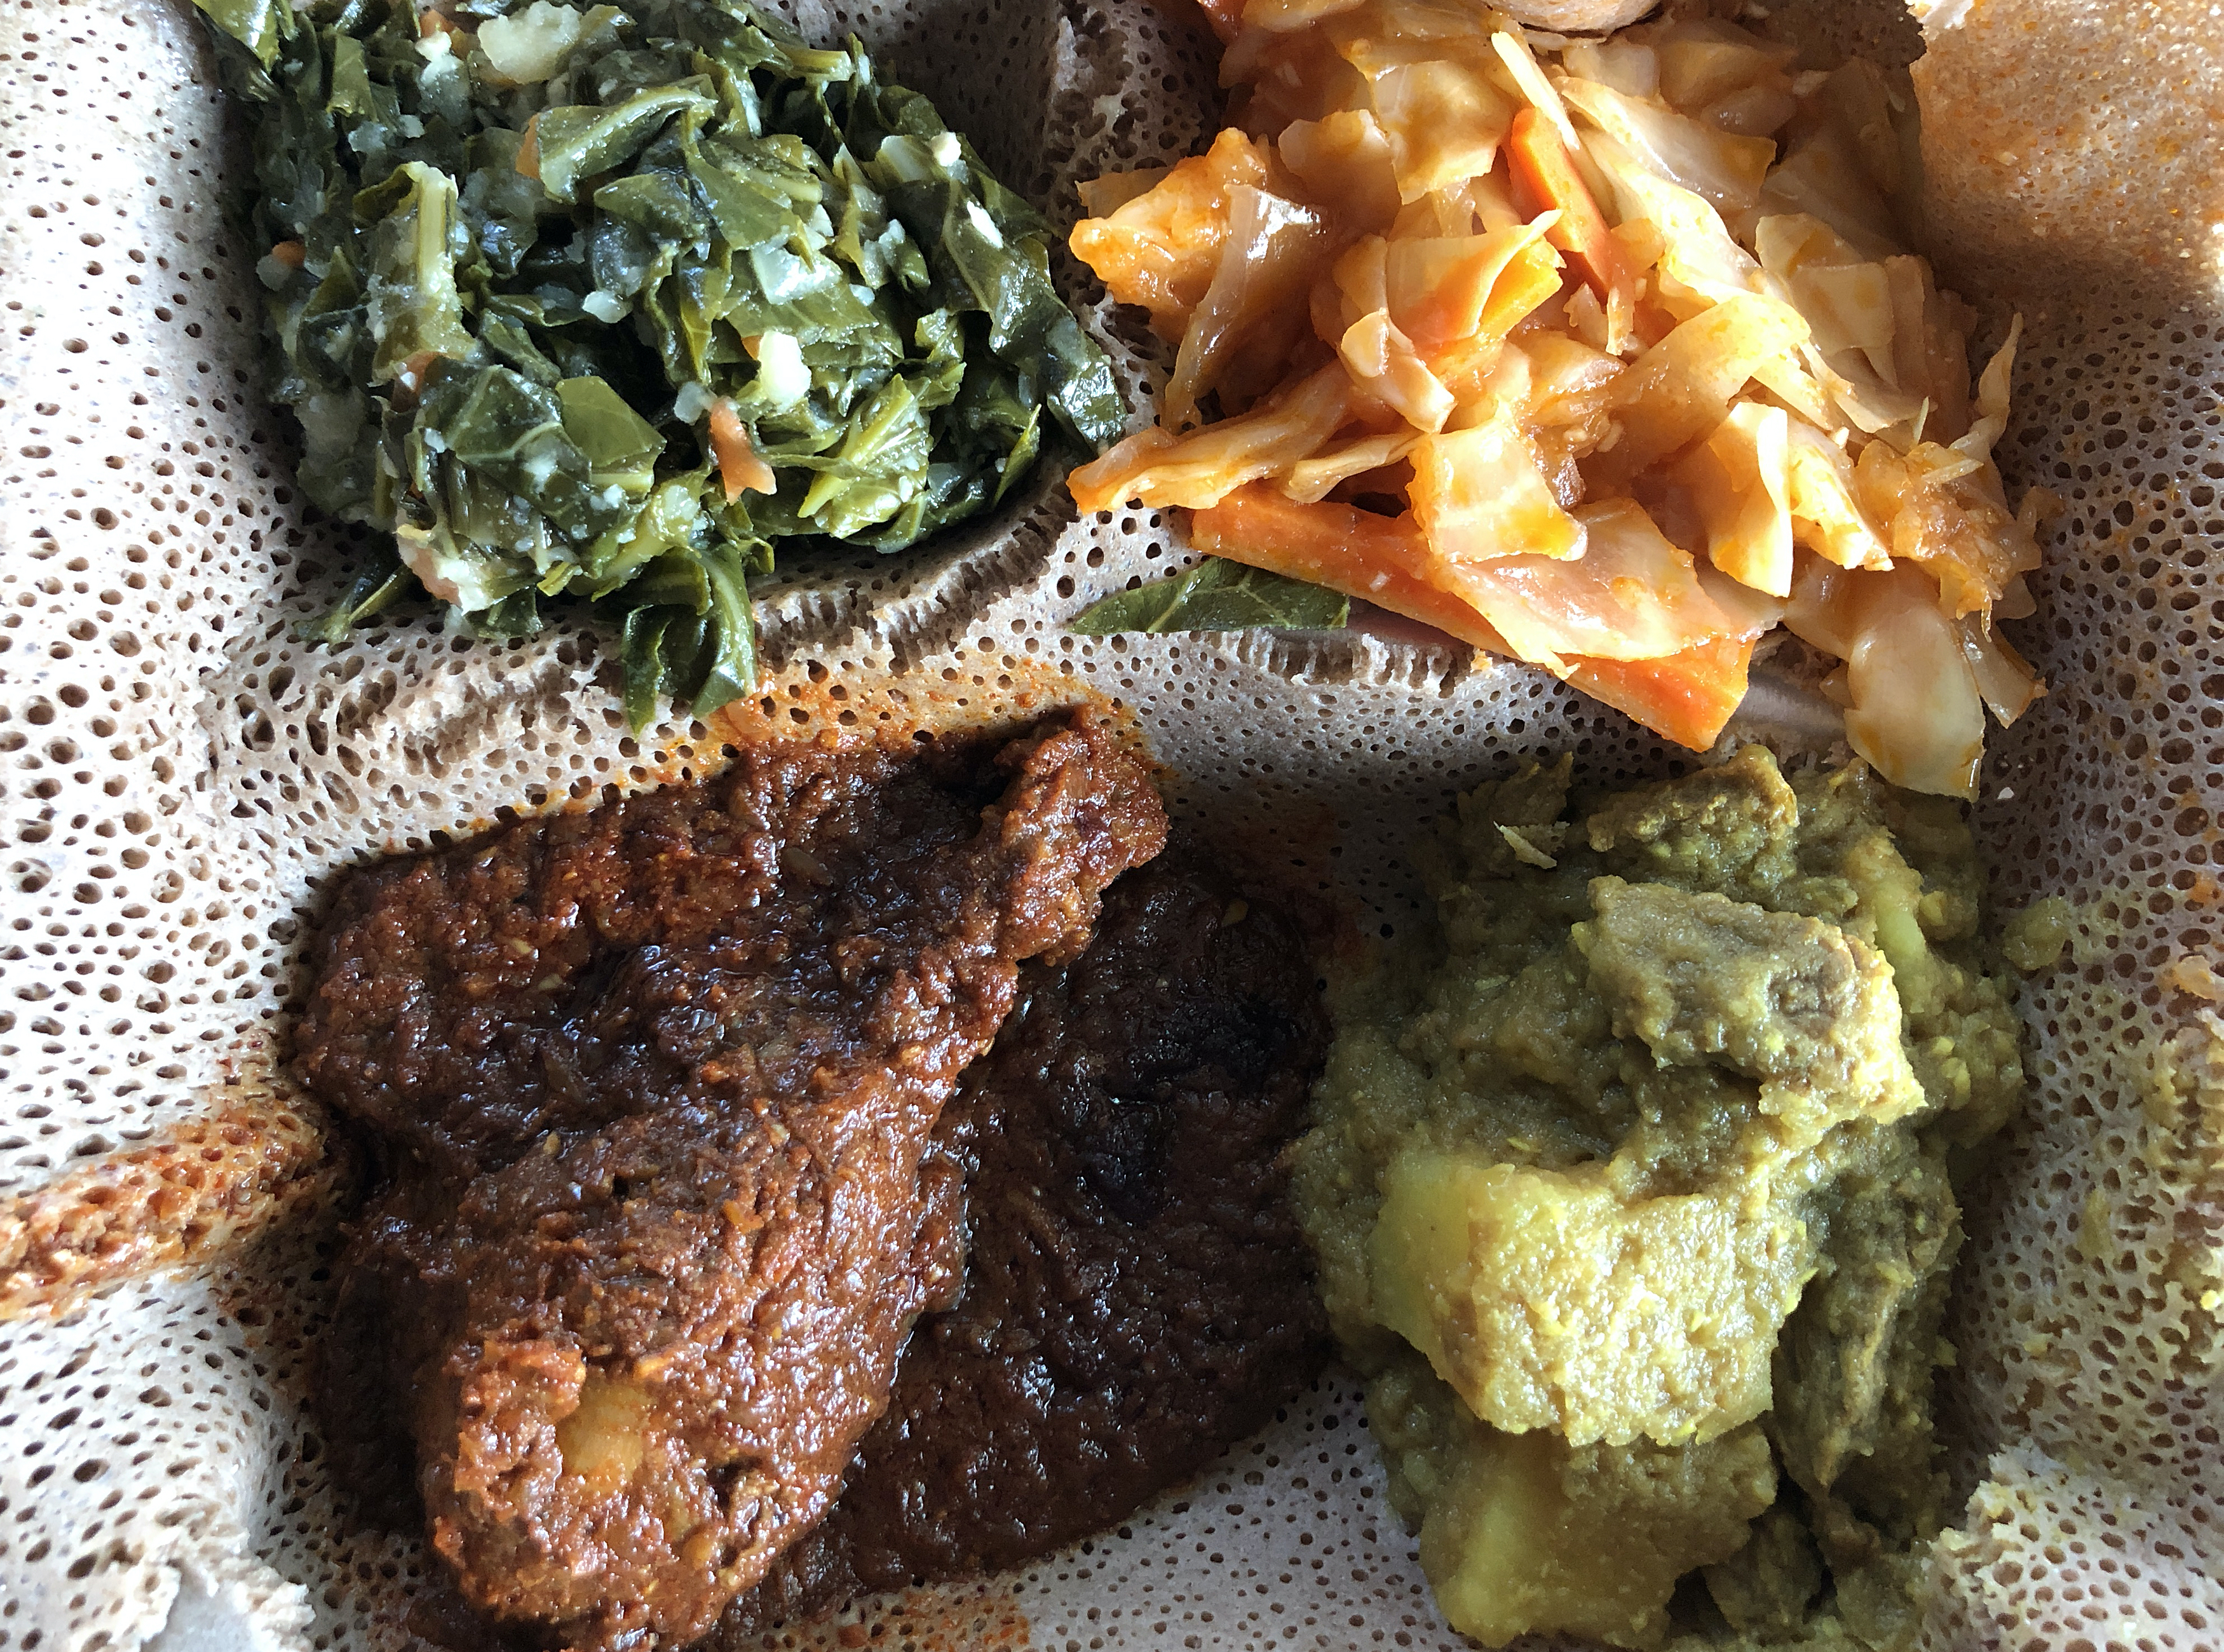 Queen of Sheba's meat and vegetable combination includes chicken doro wot, beef alicha sega wot, collards gomen wot and cabbage atakilt on a base of injera flatbread.